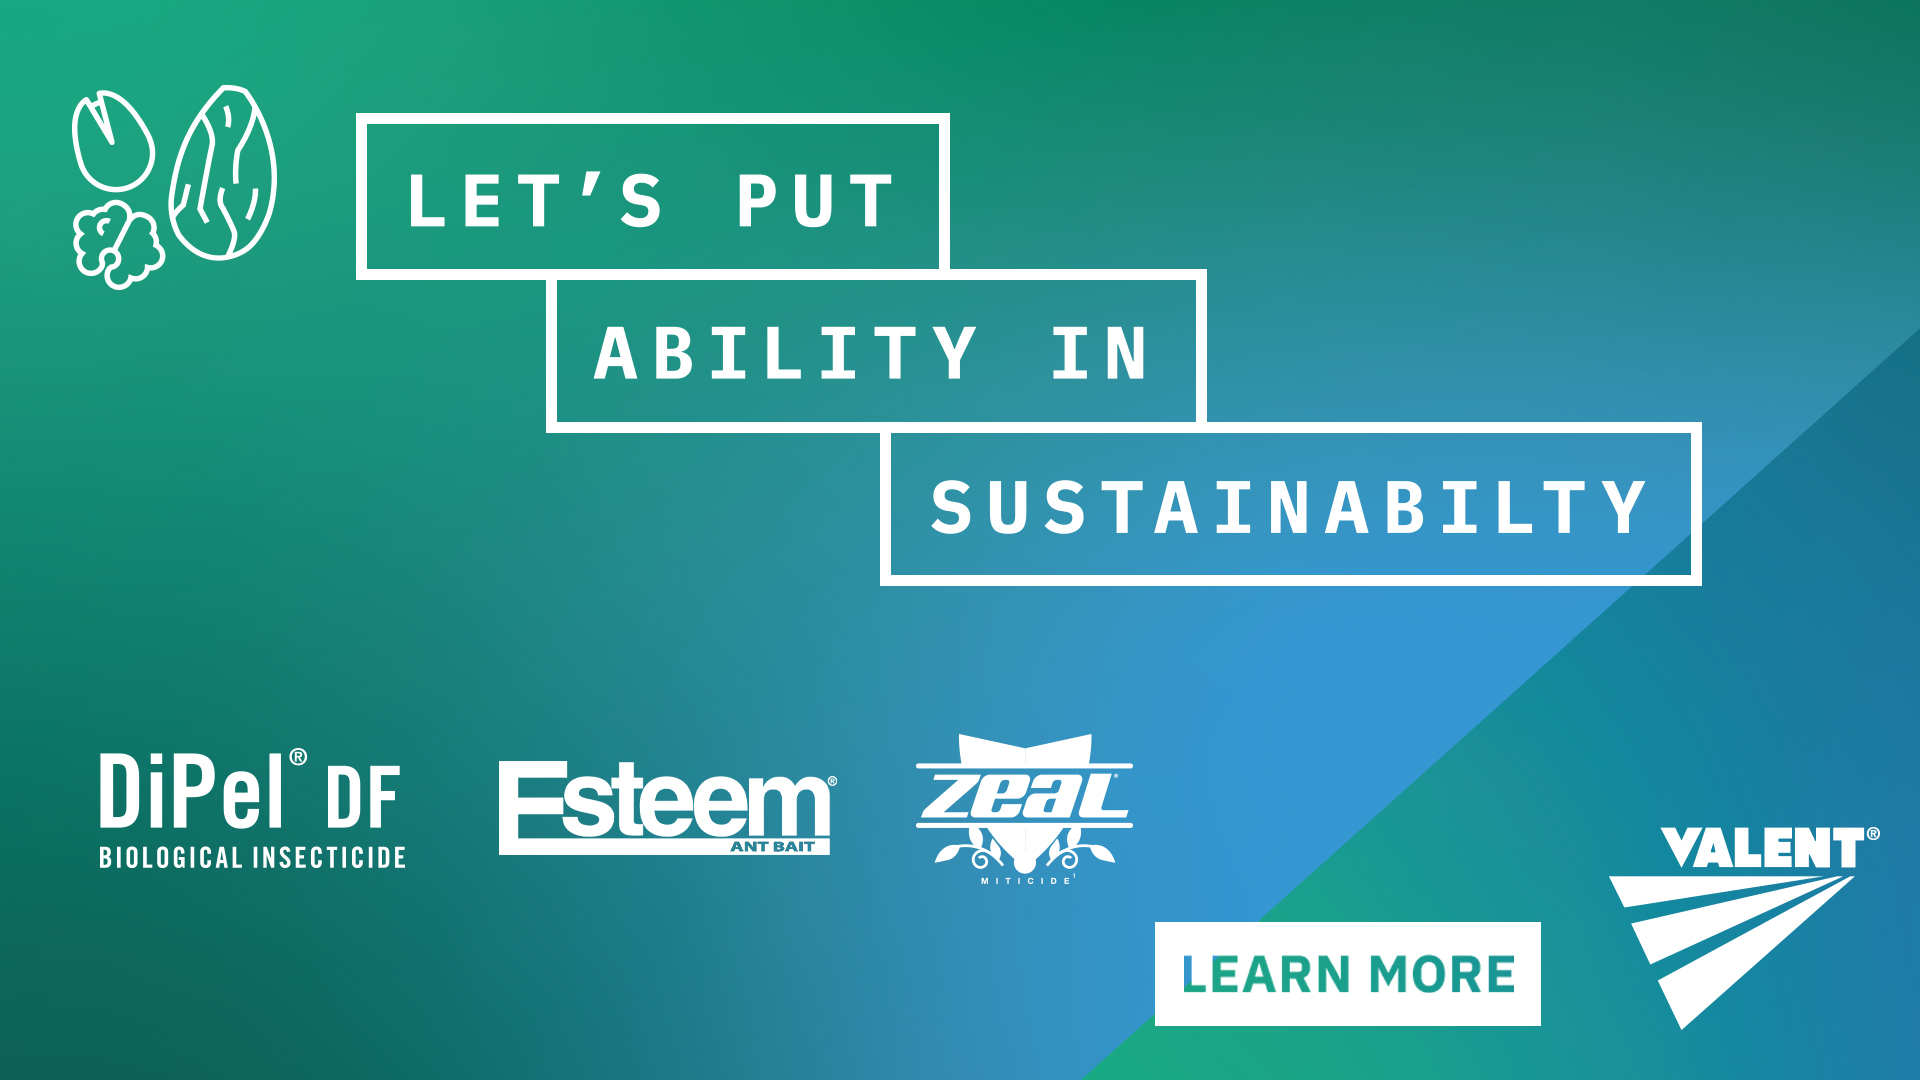 Put Ability in Sustainability - Valent